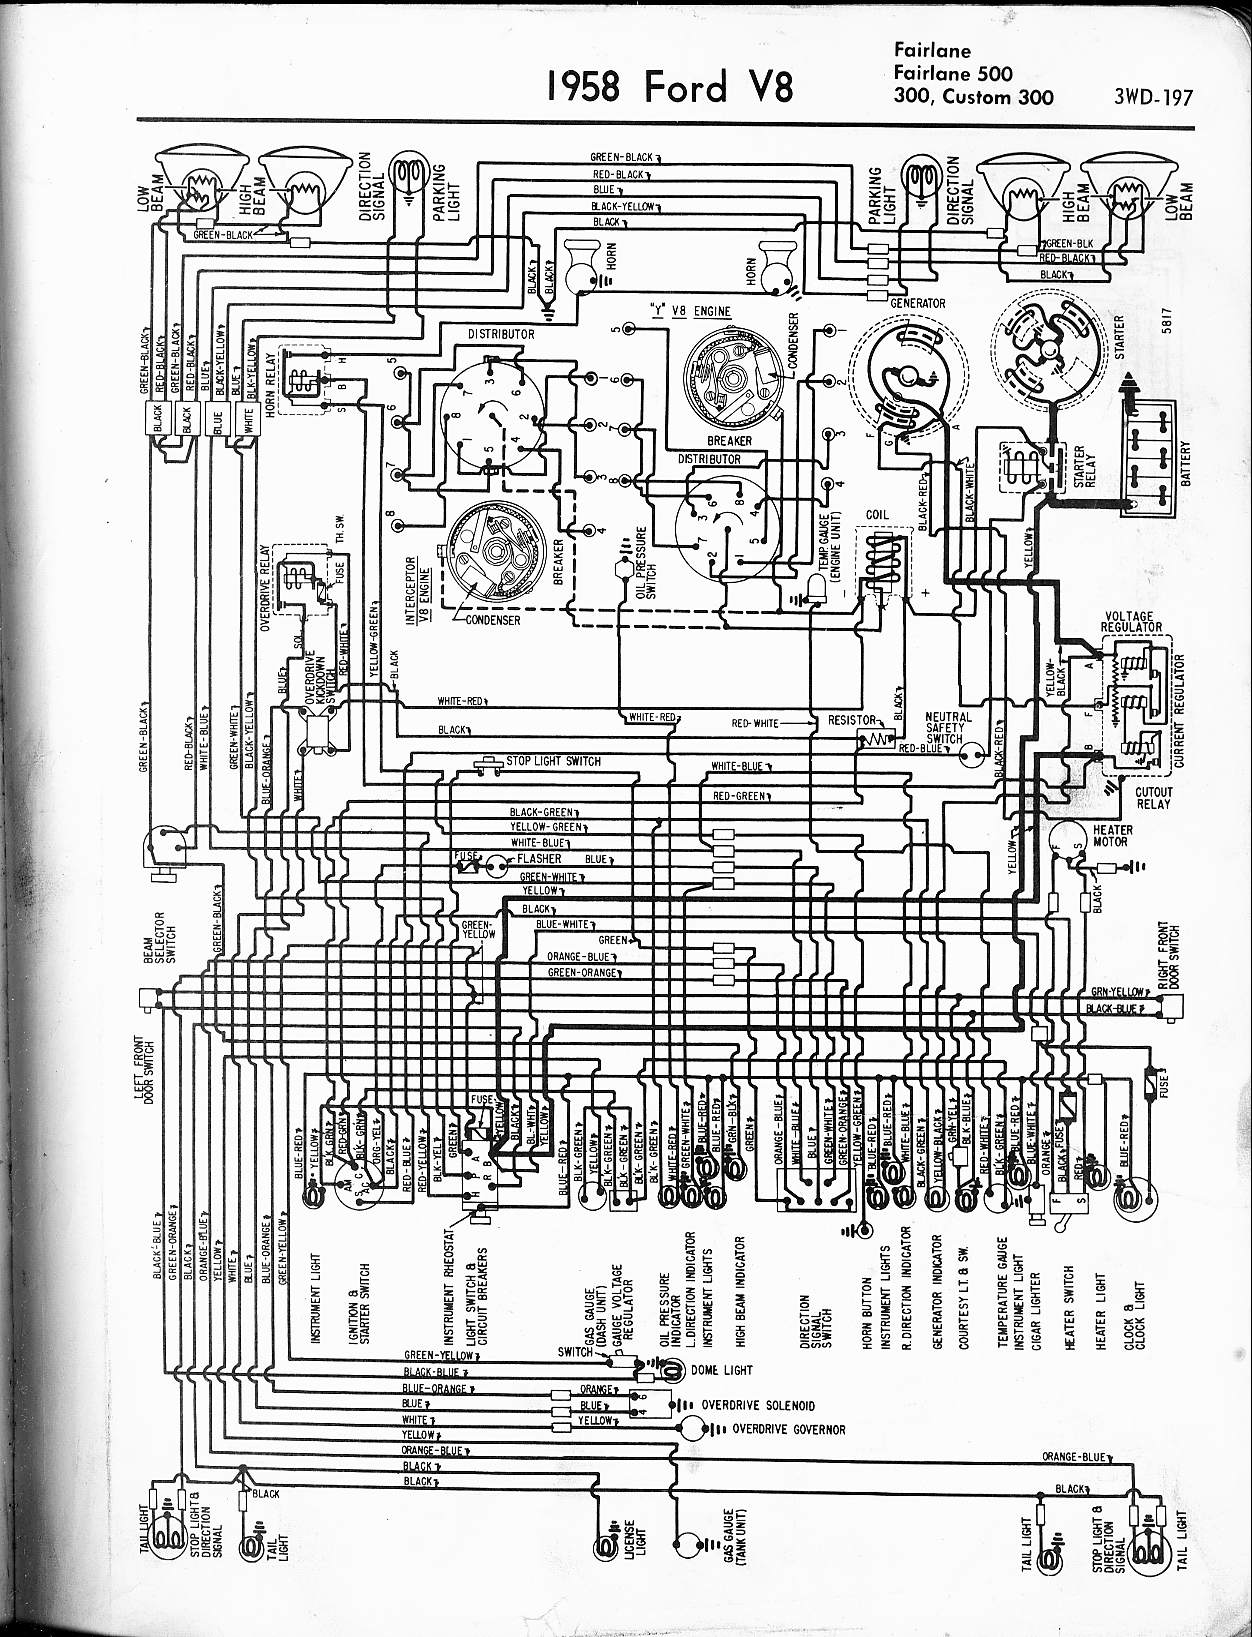 MWire5765 197 57 65 ford wiring diagrams 1966 ford truck wiring diagram at eliteediting.co